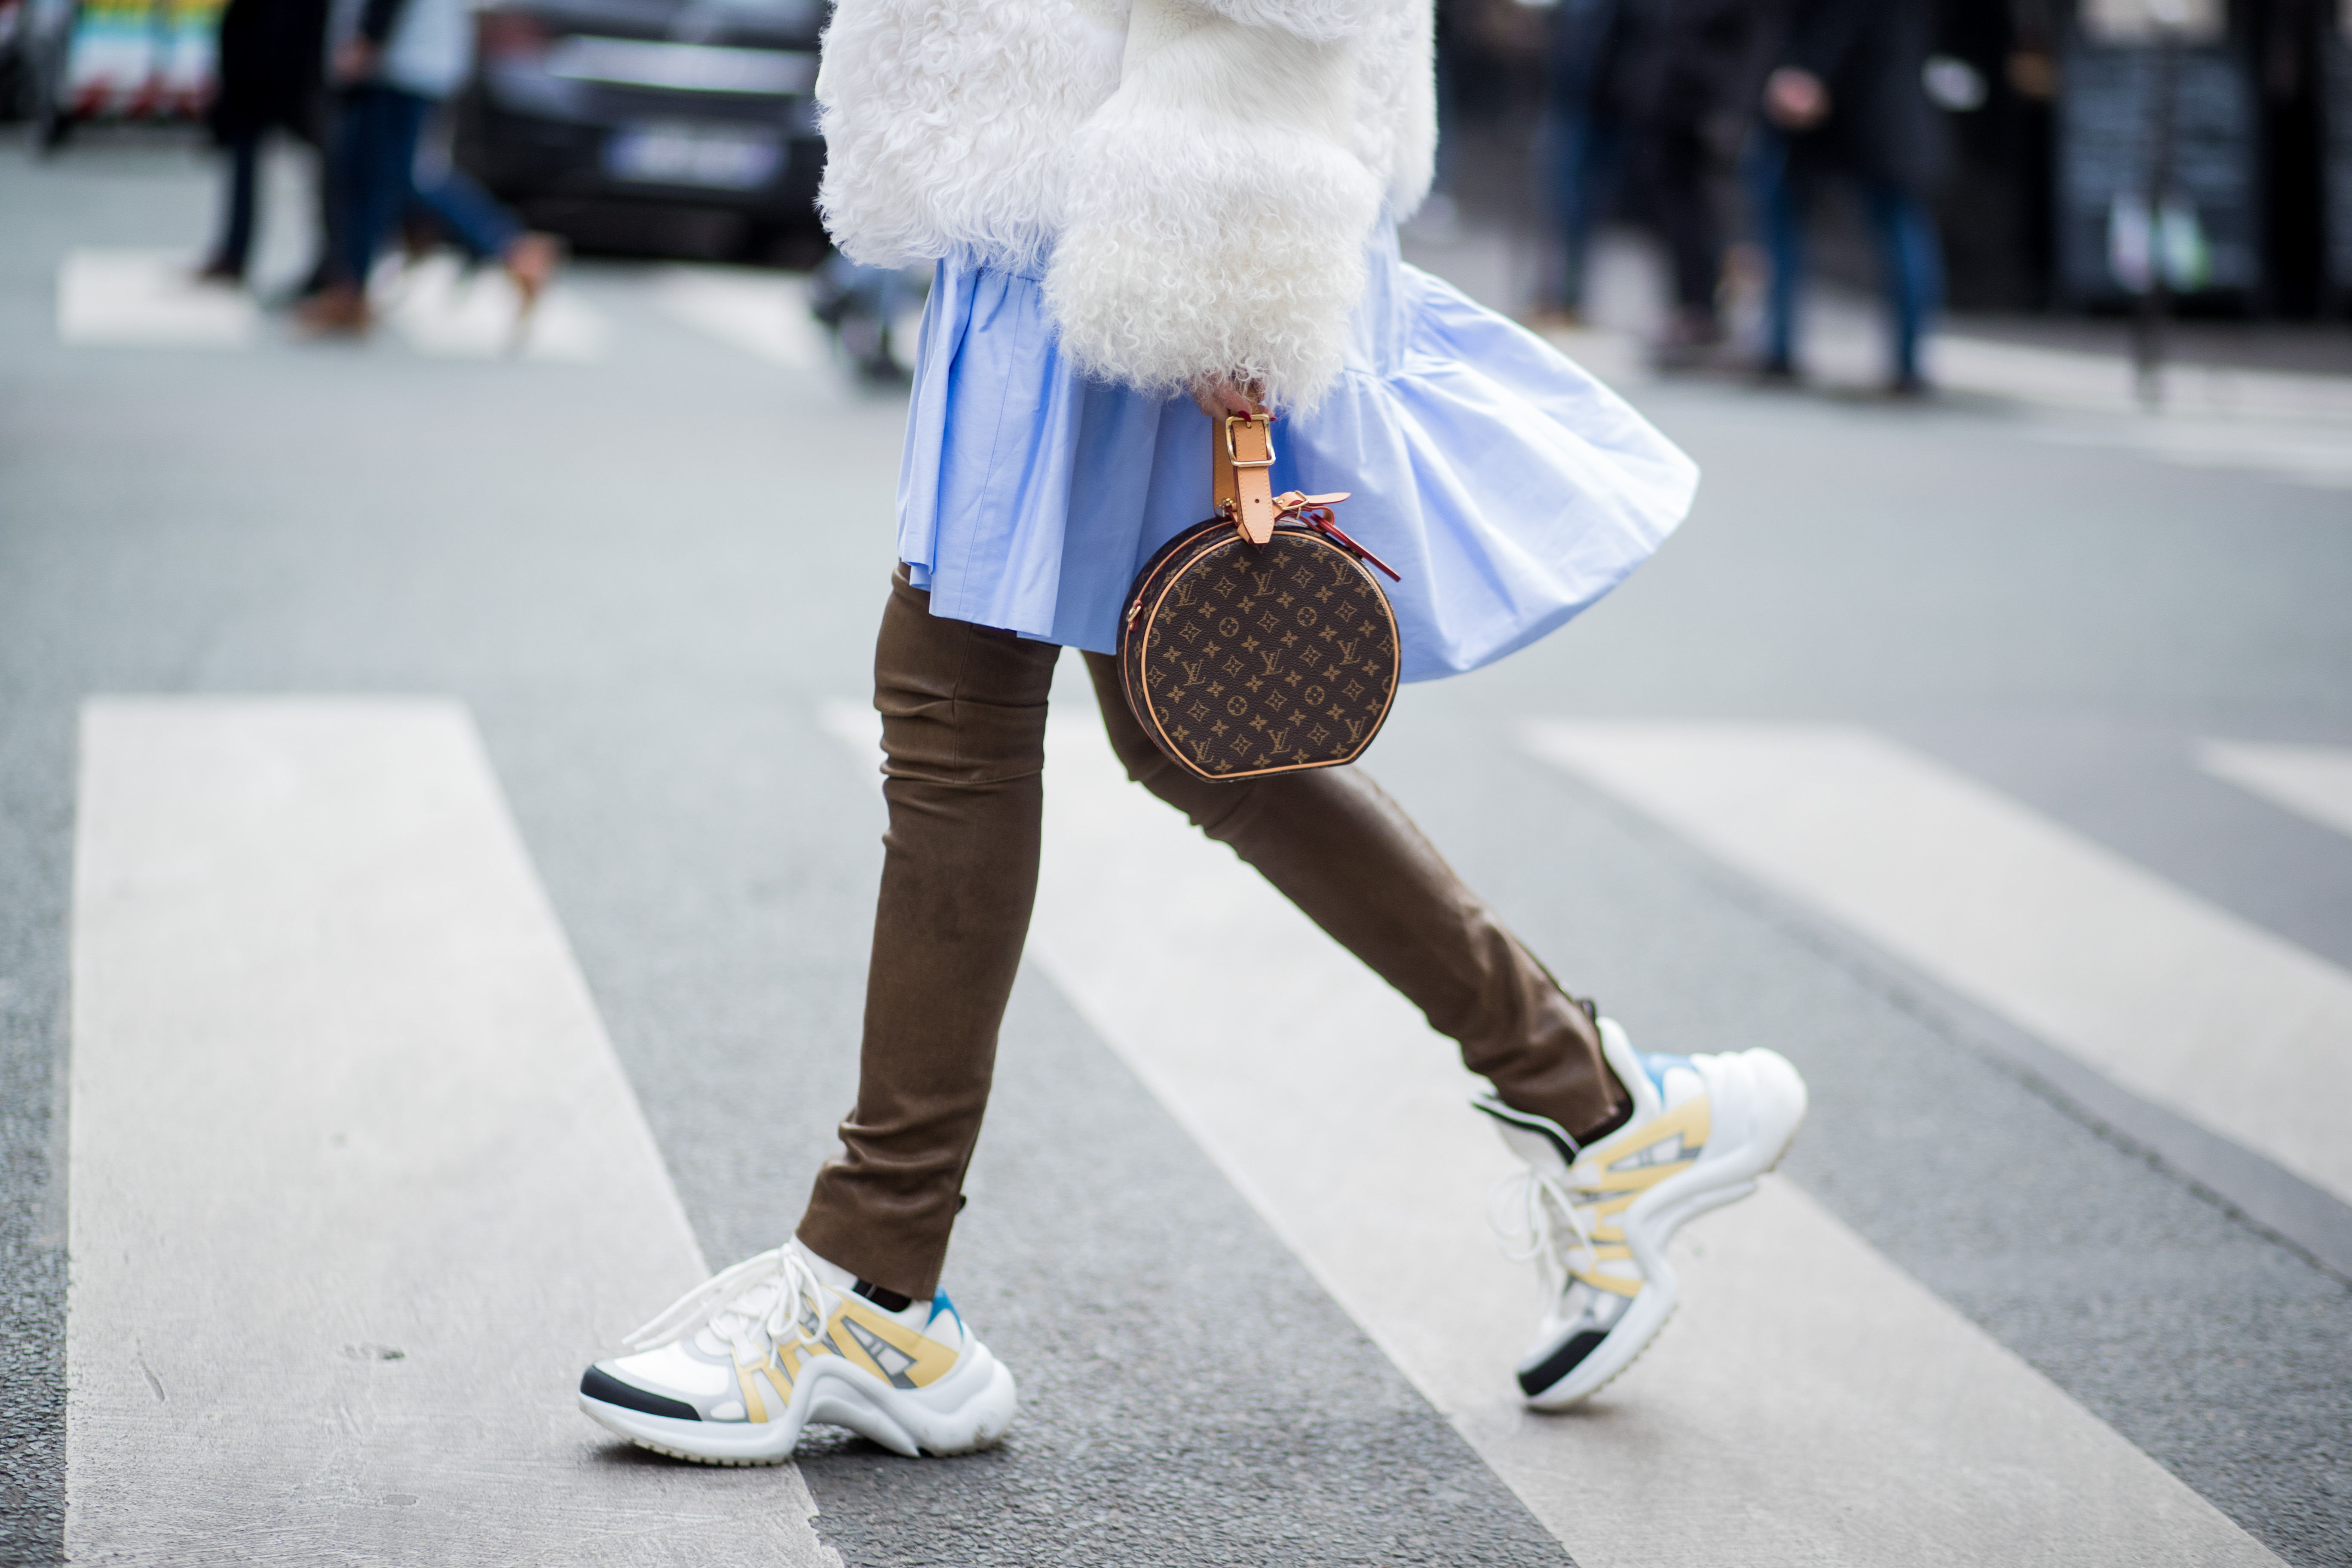 The ugly designer sneakers that have